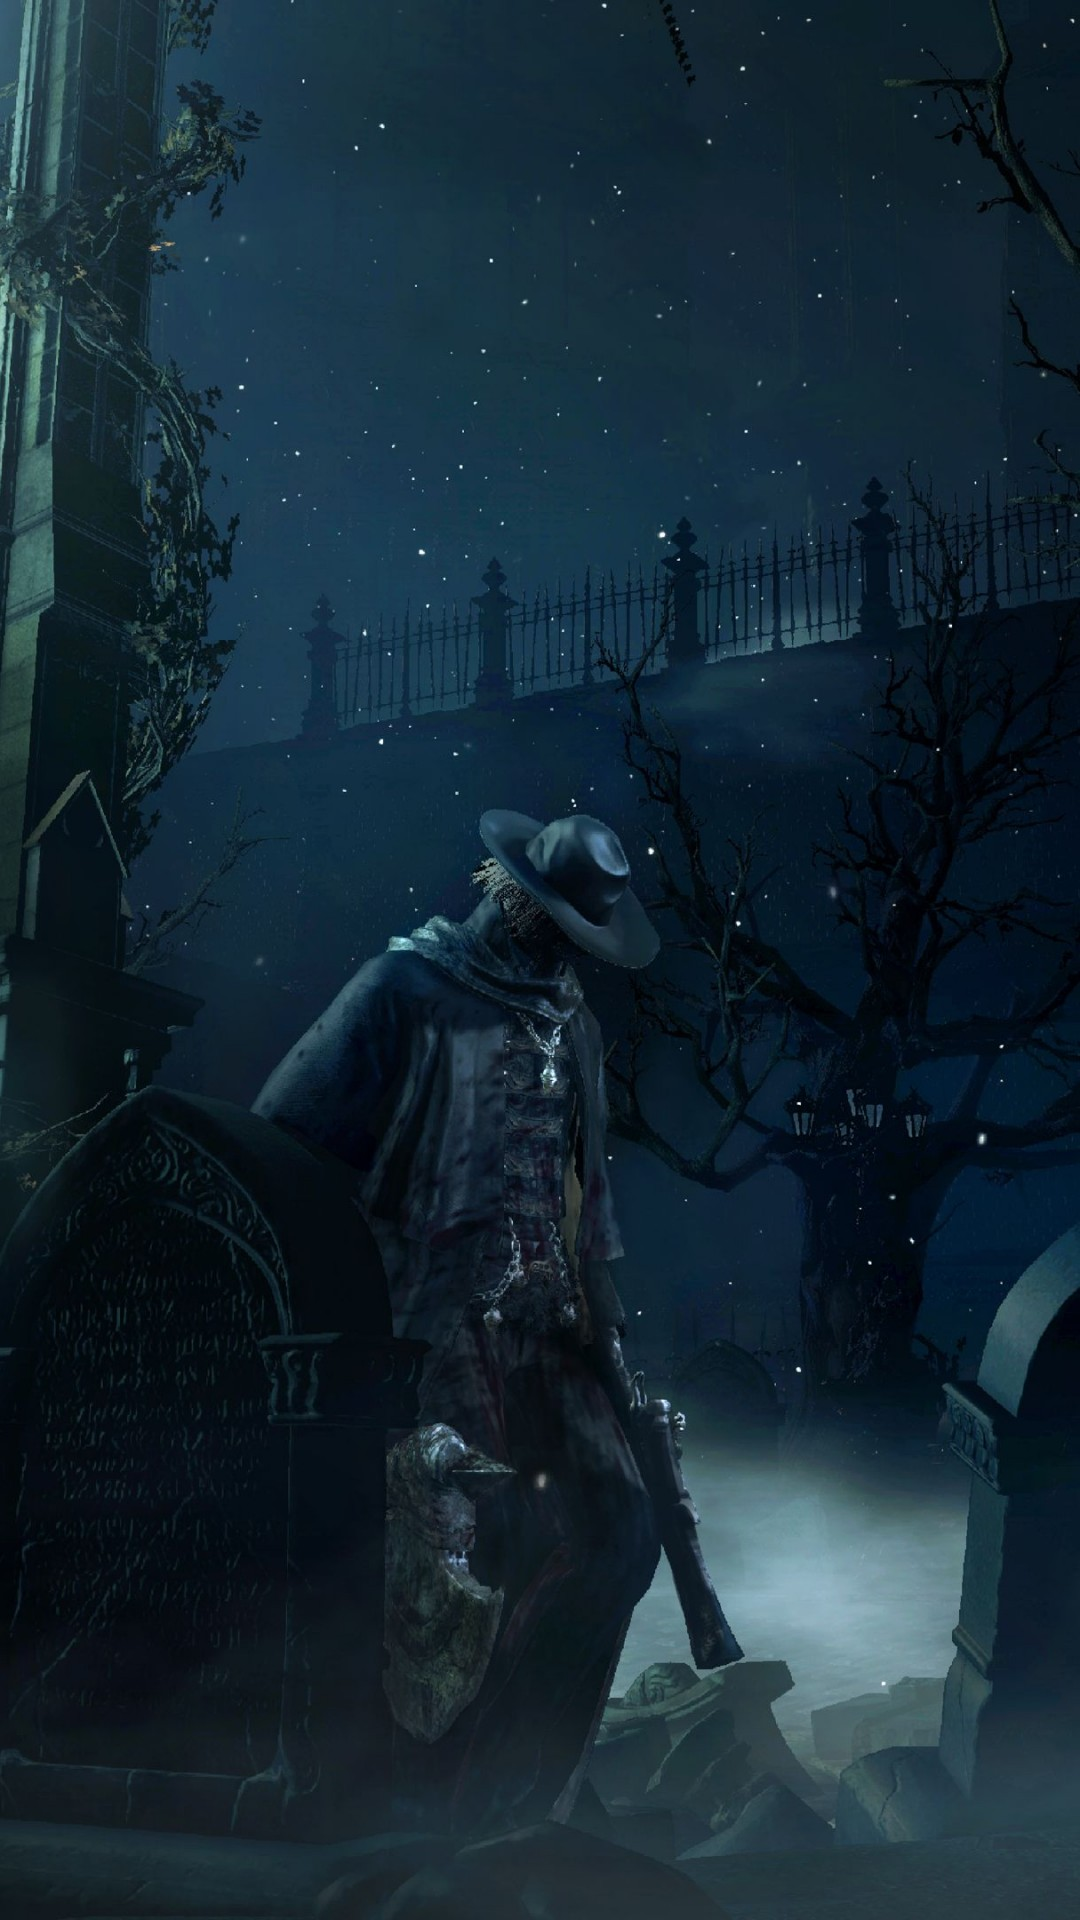 Best Christmas Wallpaper For Iphone Wallpaper Bloodborne Gameplay Review Screenshot